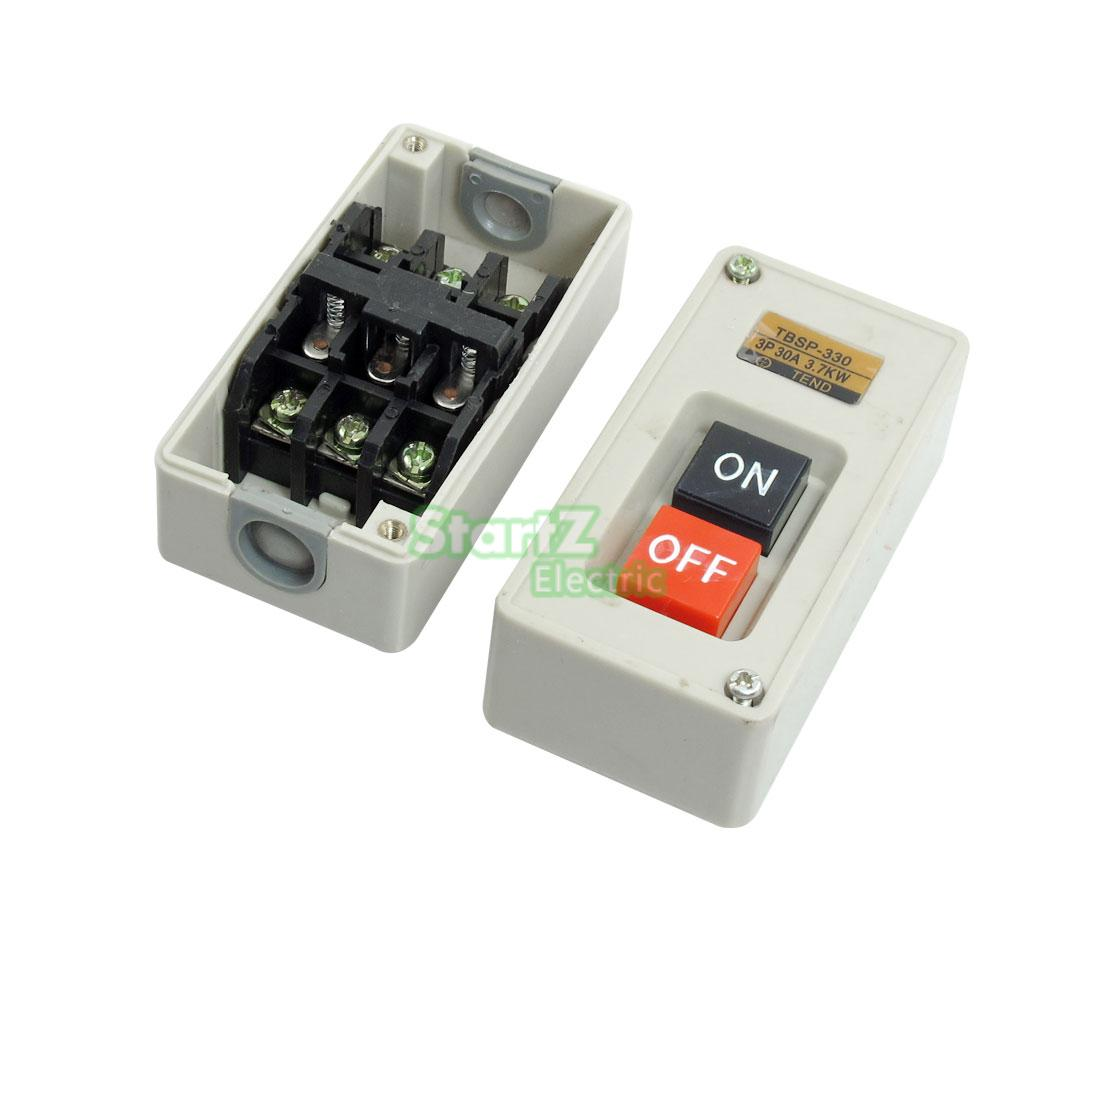 3P 3 Phase 30A 3.7KW Self Lock On/Off Power Pushbutton Switch TBSP-330